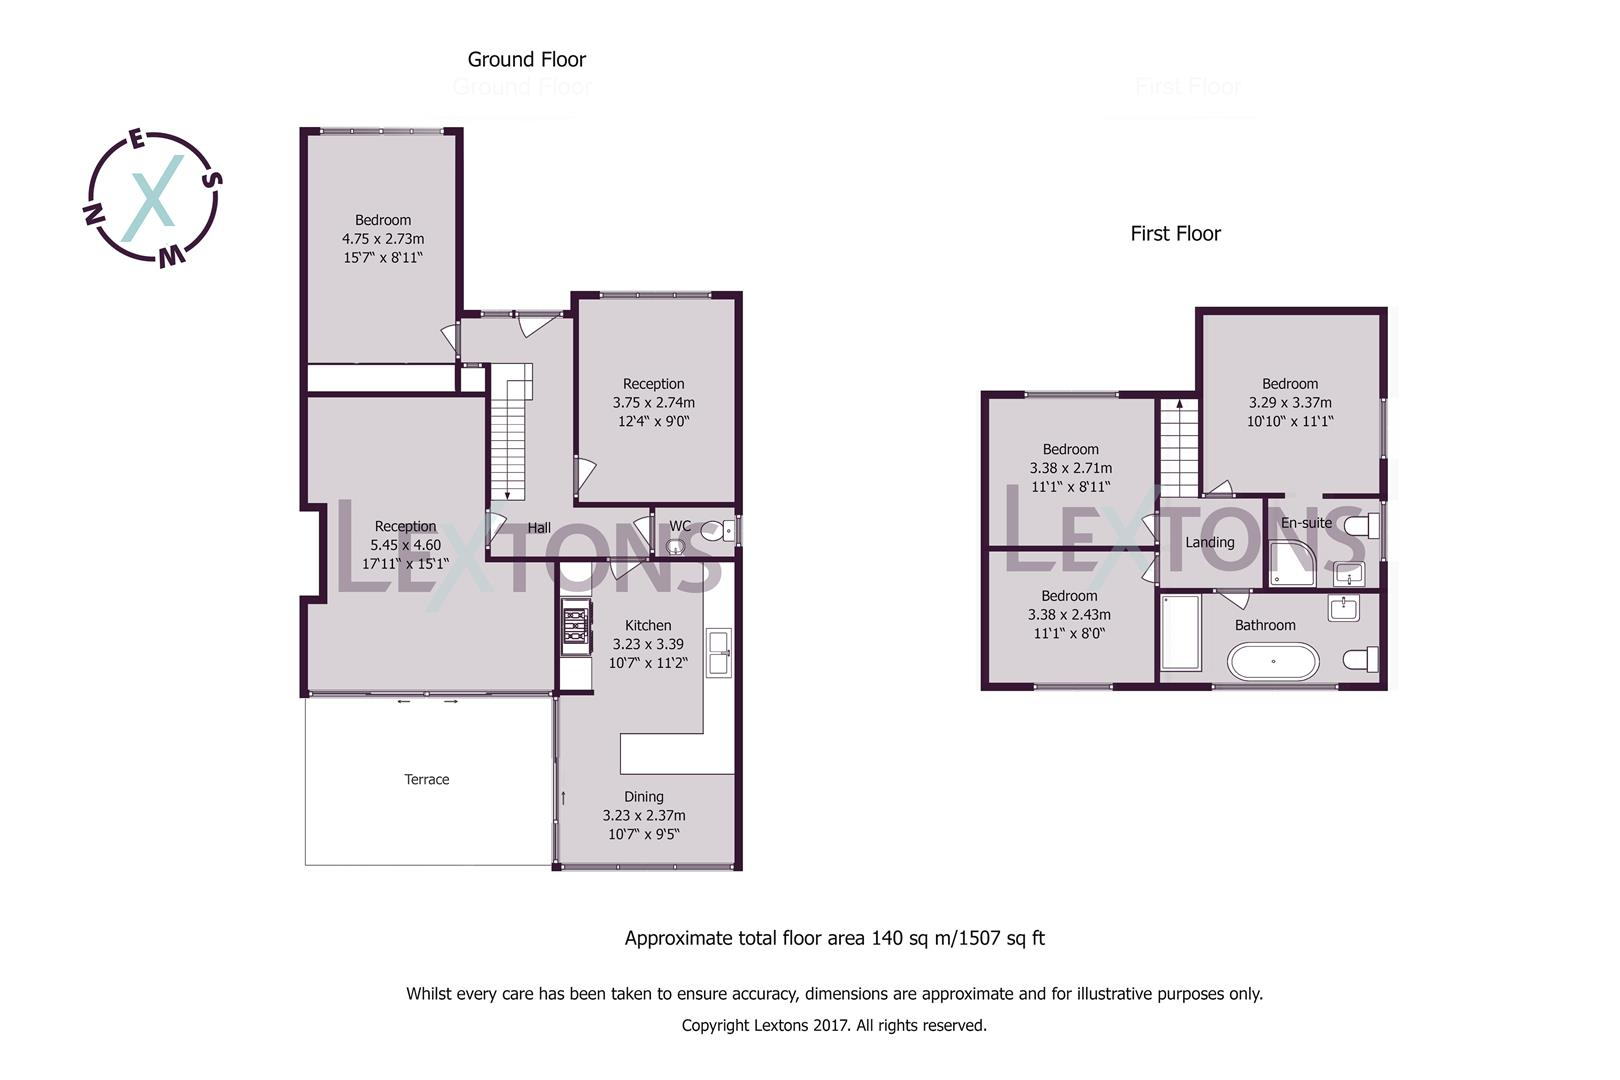 Floorplans For St. Helens Crescent, Hove